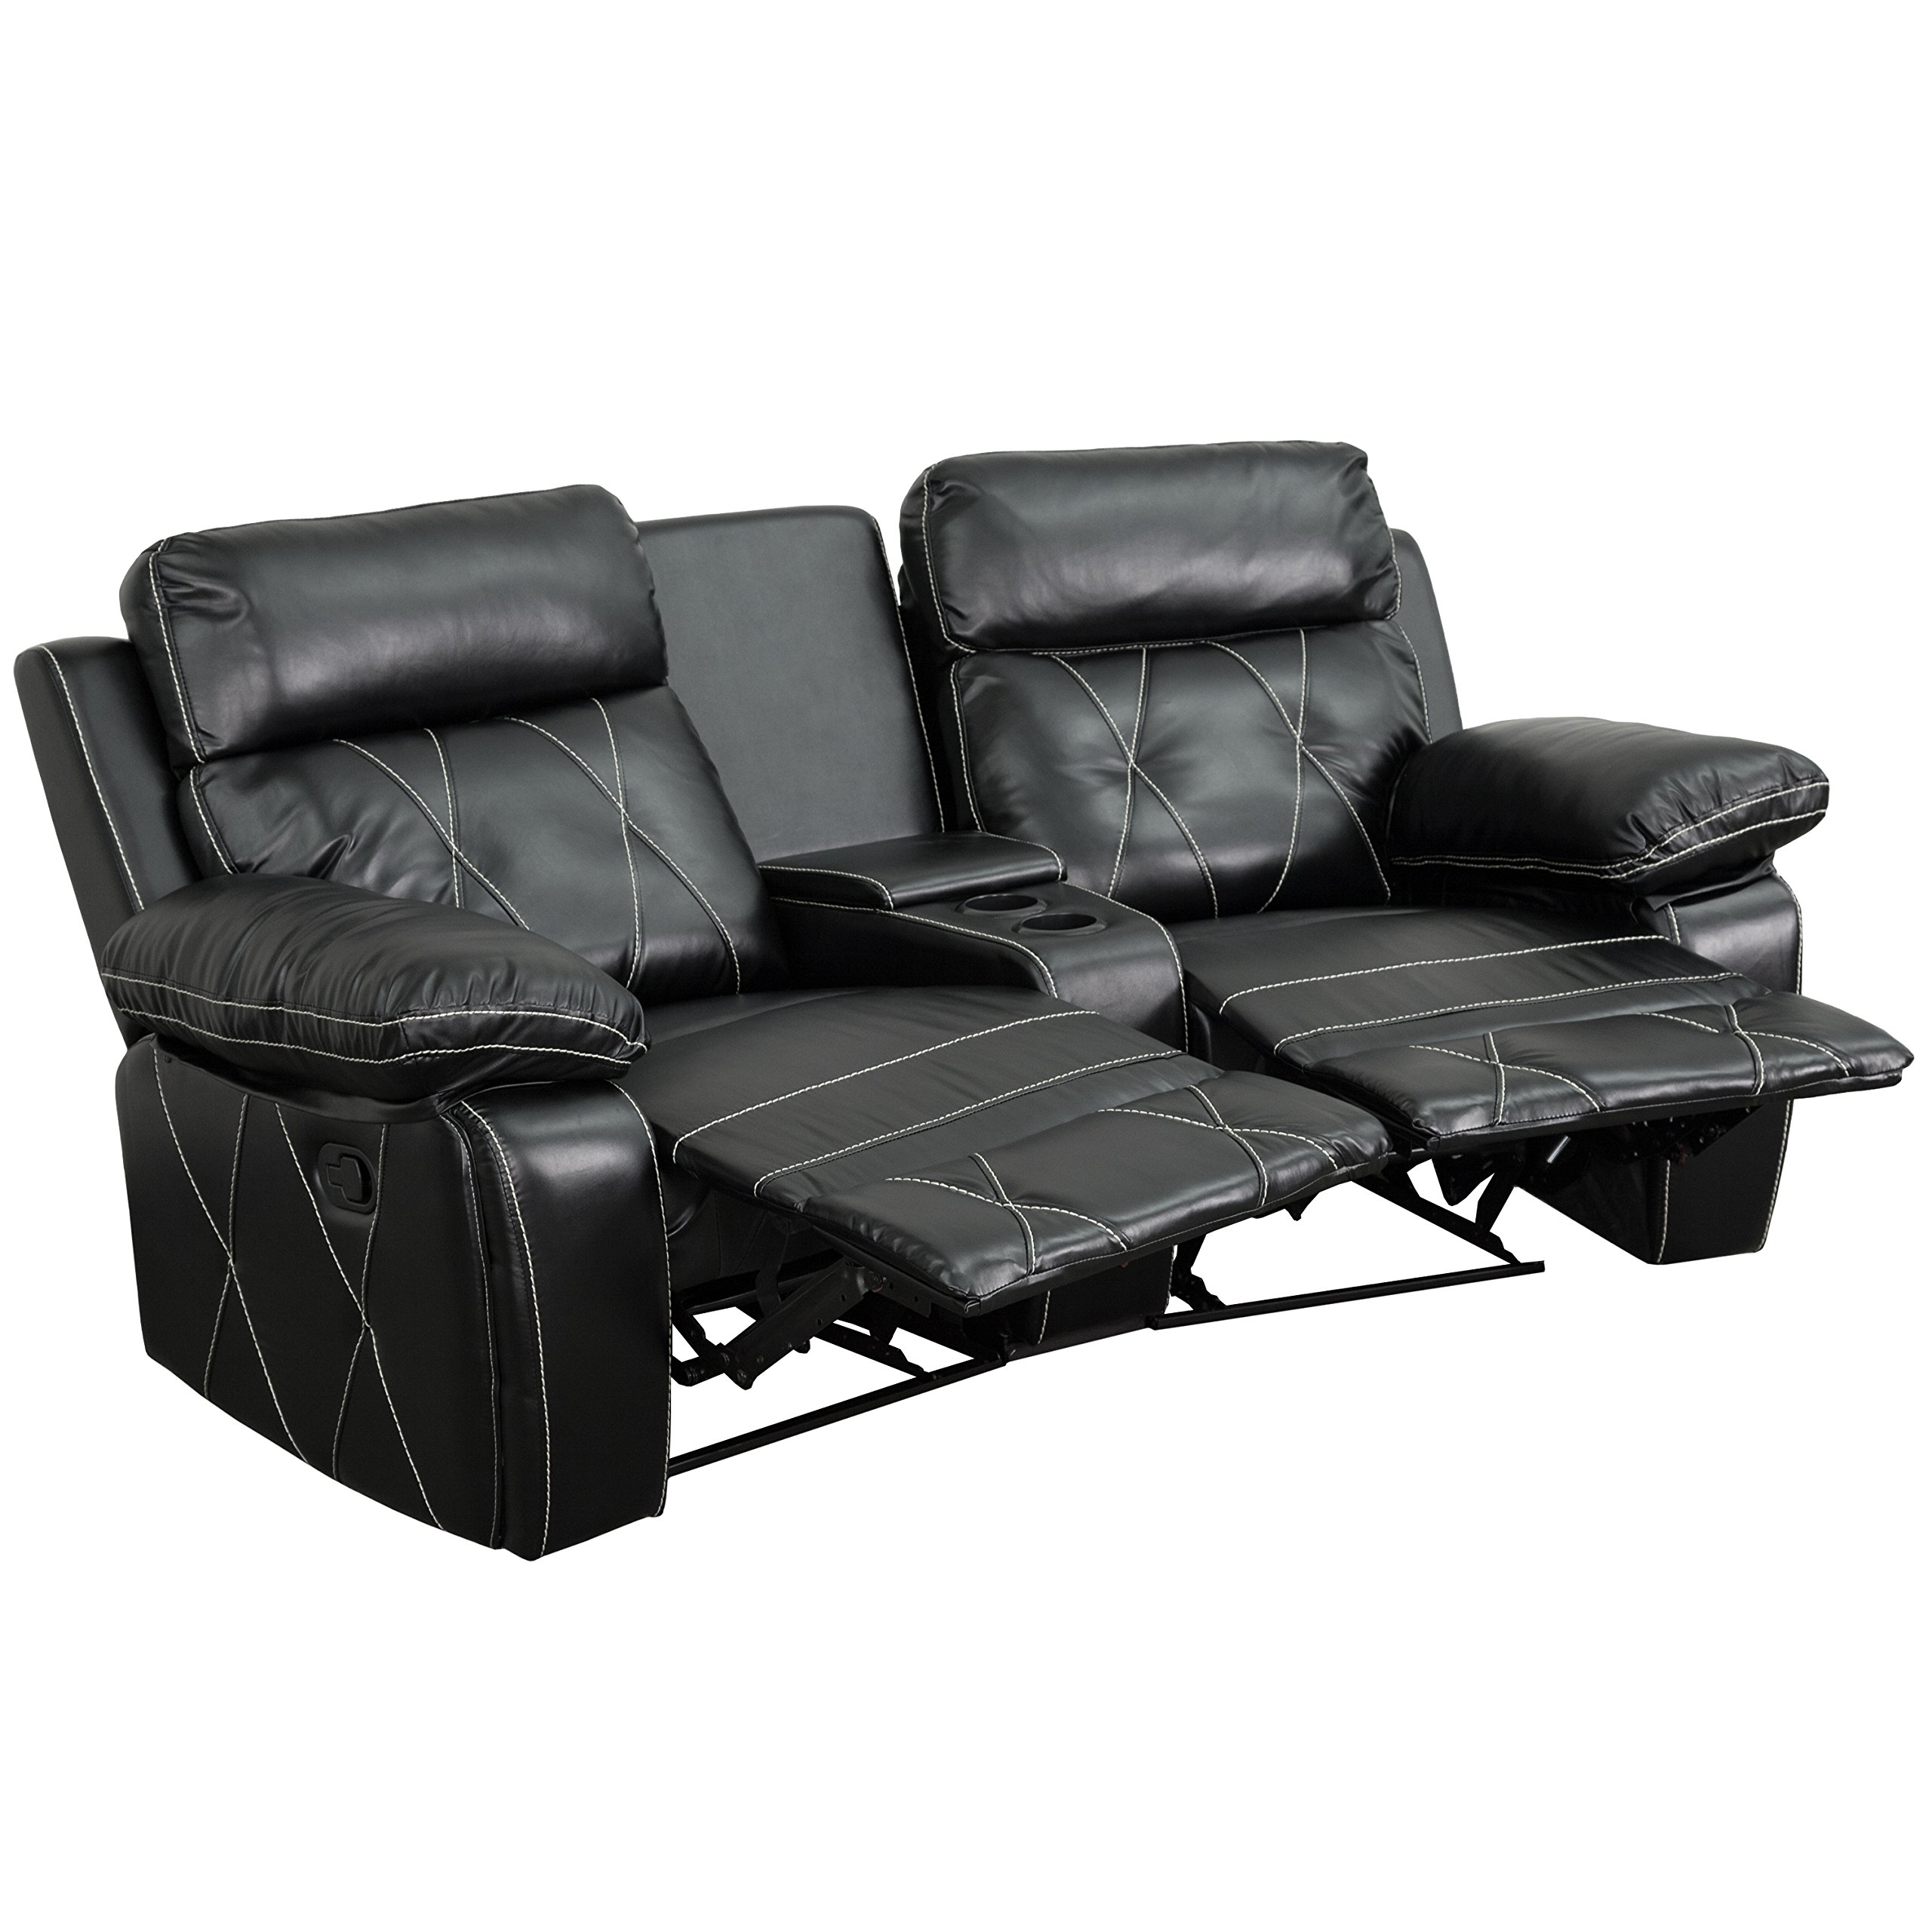 Flash Furniture Reel Comfort Series 2-Seat Reclining Black Leather Theater Seating Unit with Curved Cup Holders by Flash Furniture